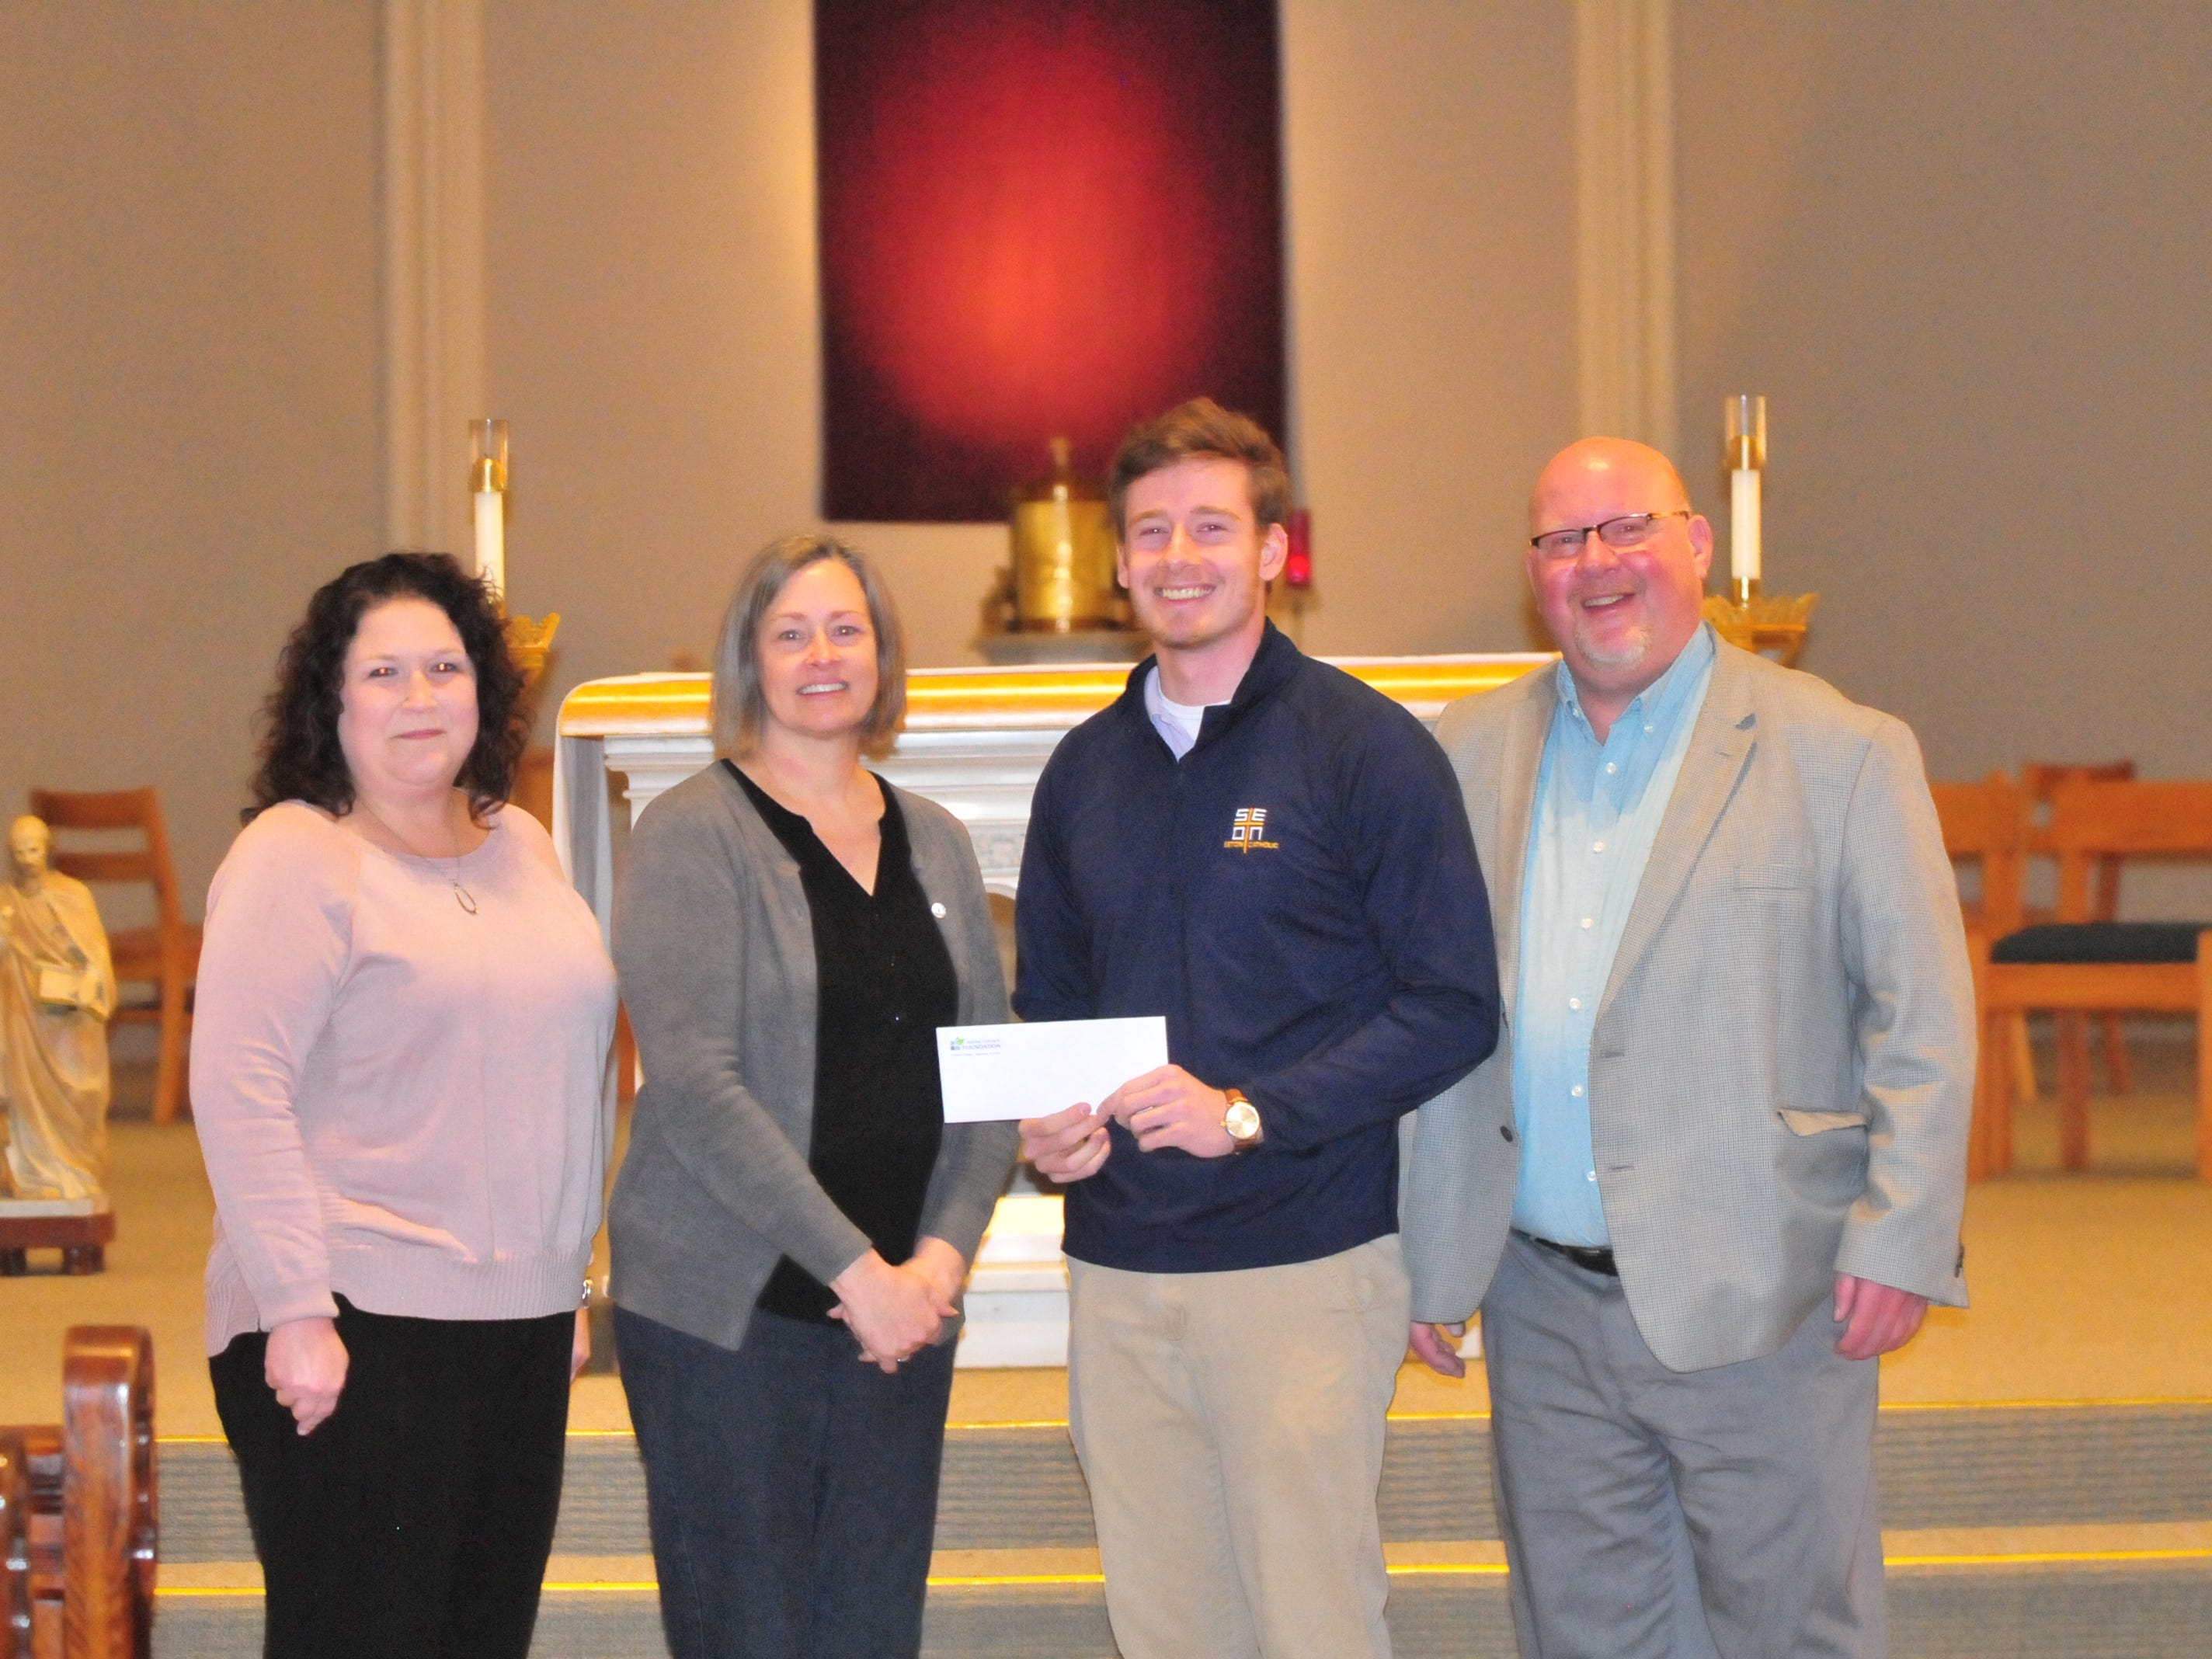 Seton Catholic senior Joseph Lahmann, third from left, with Wayne County Foundation Program Officer Lisa Bates, mother Margaret Rees Lahman, and father Patrick Lahmann, after finding out Joseph won the Lilly Endowment Community Scholarship after morning mass at St. Andrew's Catholic Church in Richmond Tuesday, Dec. 11, 2018.